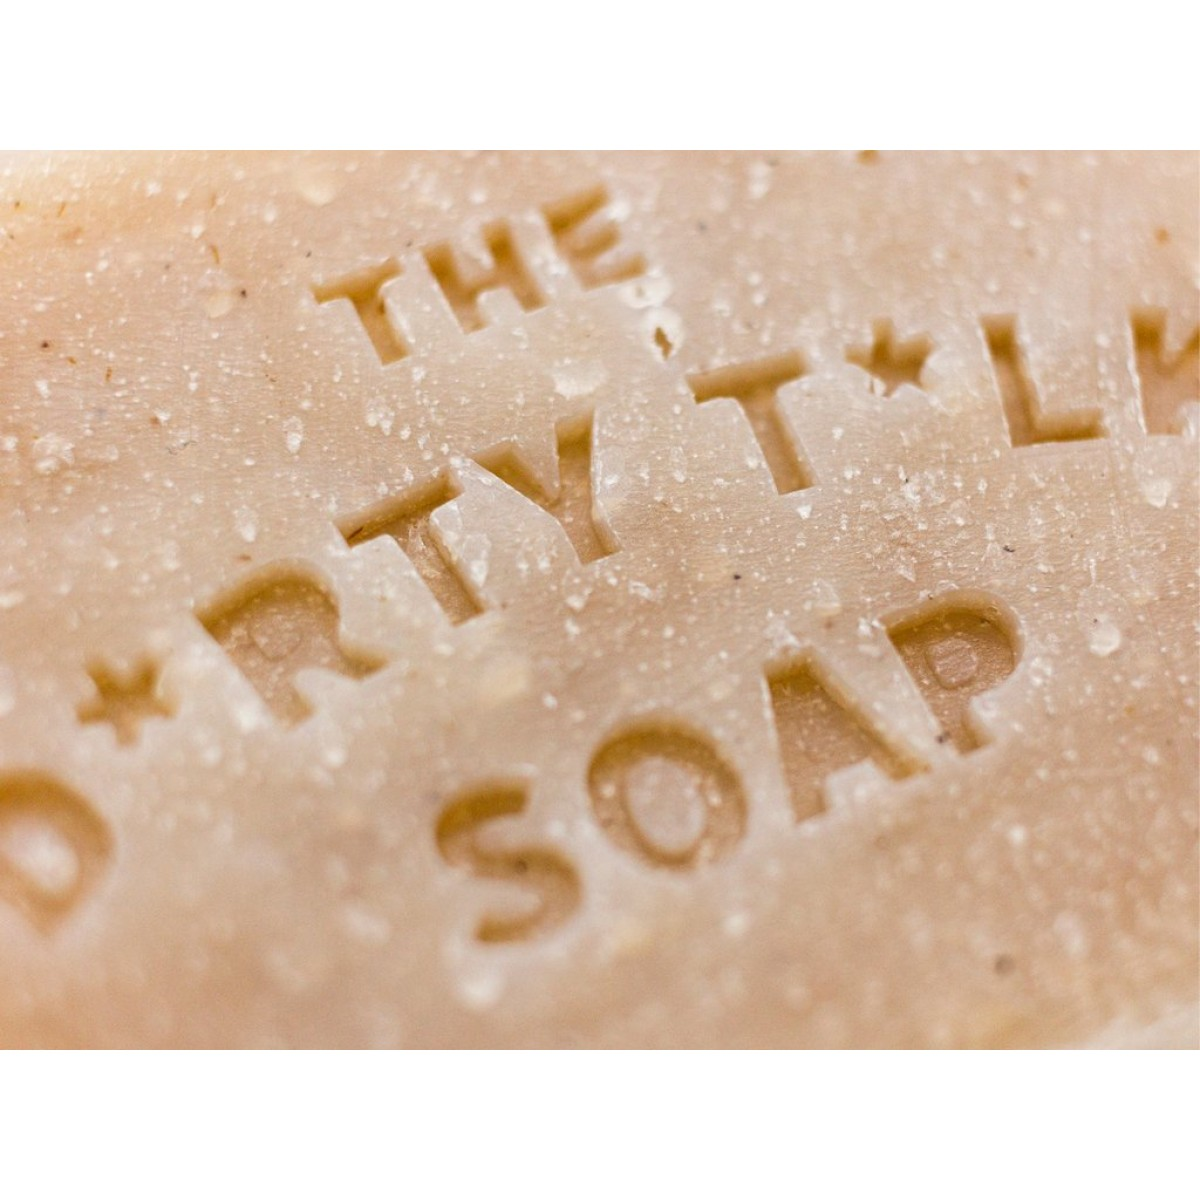 typealive / THE D*RTY T*LK SOAP / Schmutziges Spülchen